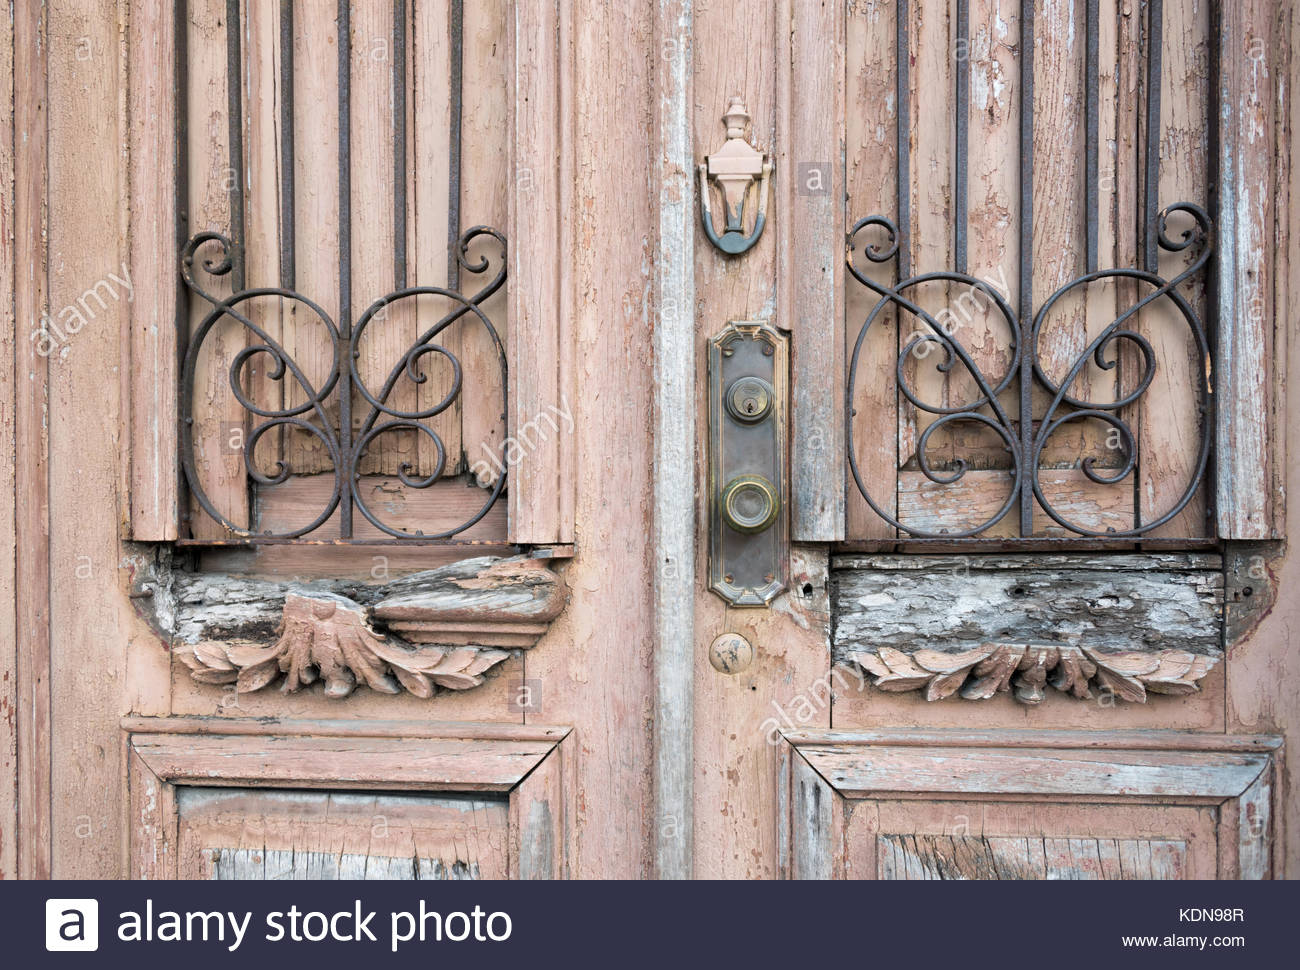 Weathered old colonial architectural detail. Timeworn wooden door with symmetrical iron grill and pattern. - Stock Image